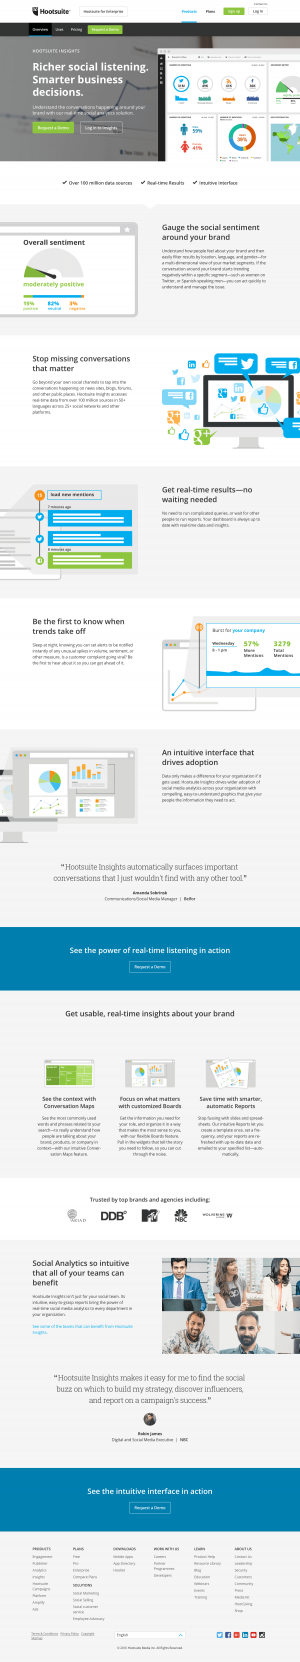 Features insights page inspiration - Hootsuite